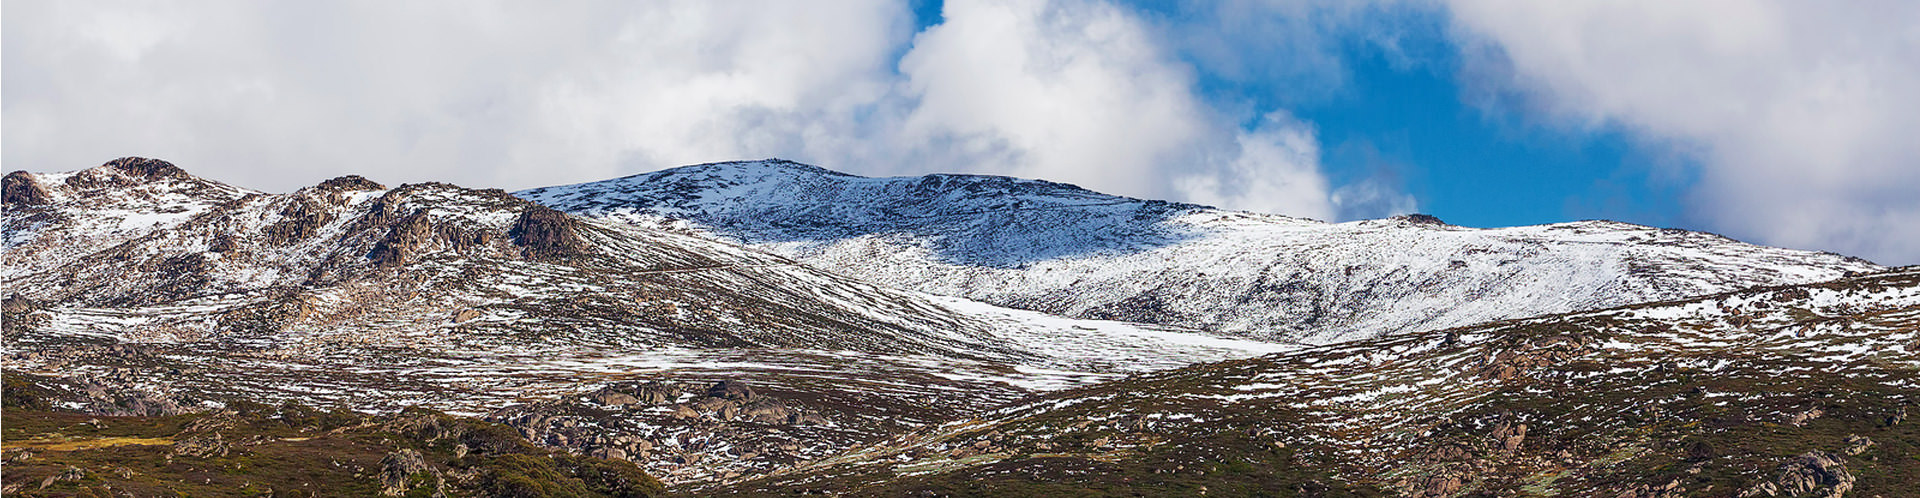 Snowy Mountains - New South Wales